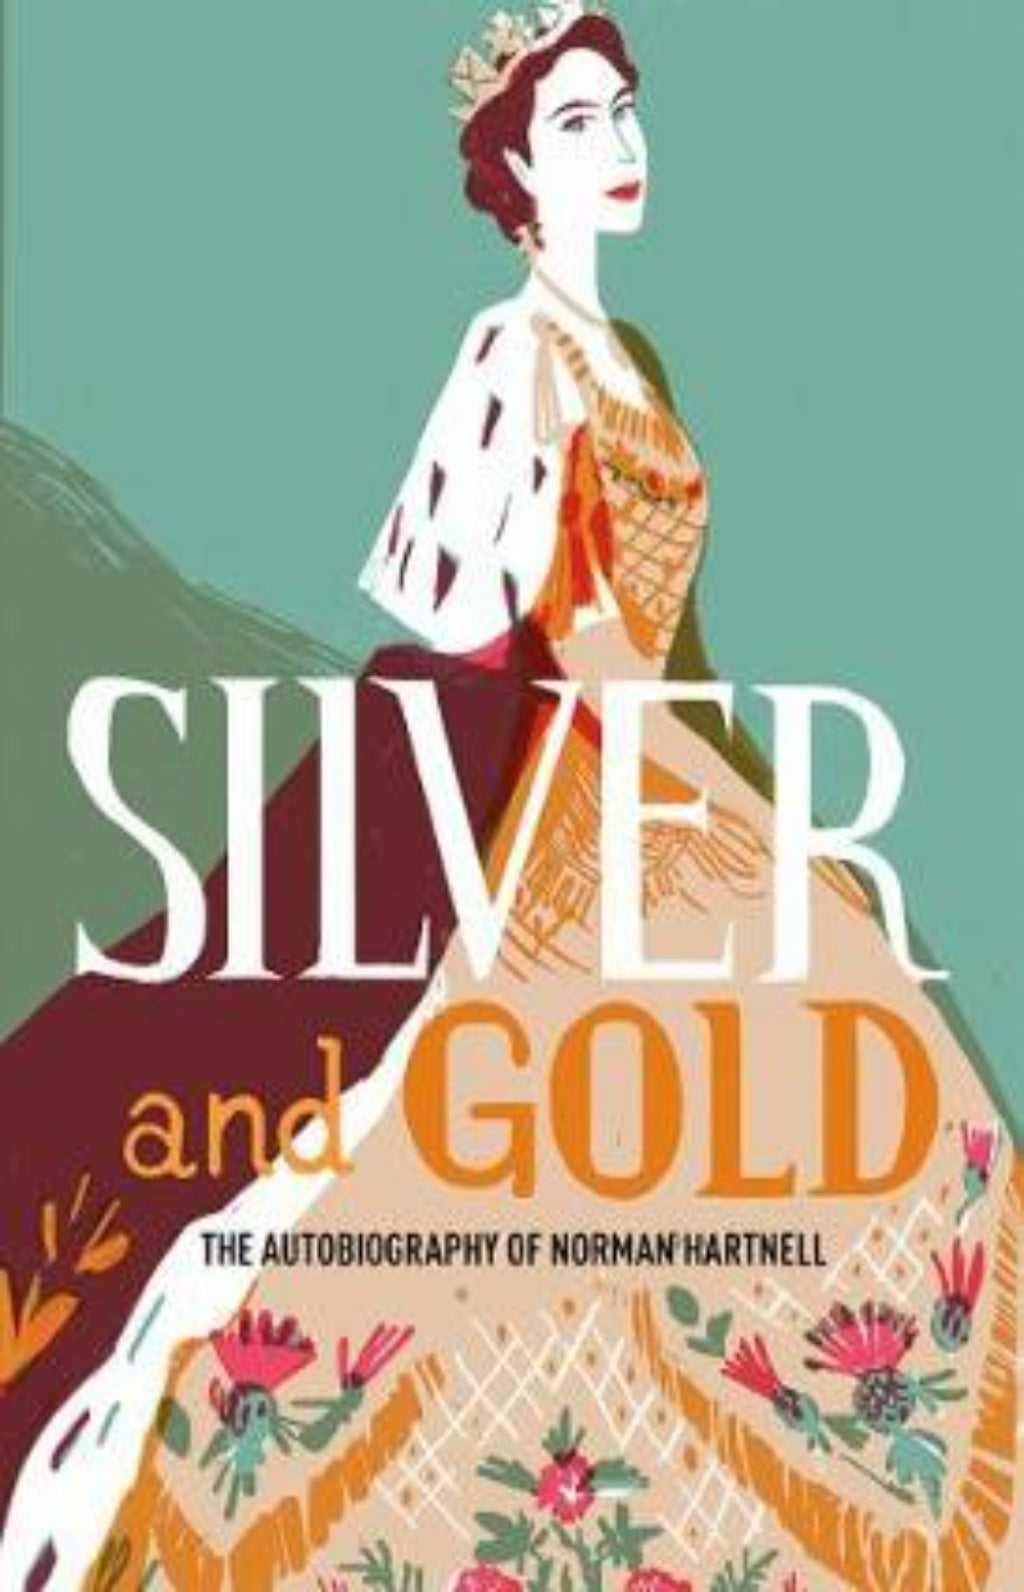 Silver and Gold : The autobiography of Norman Hartnell